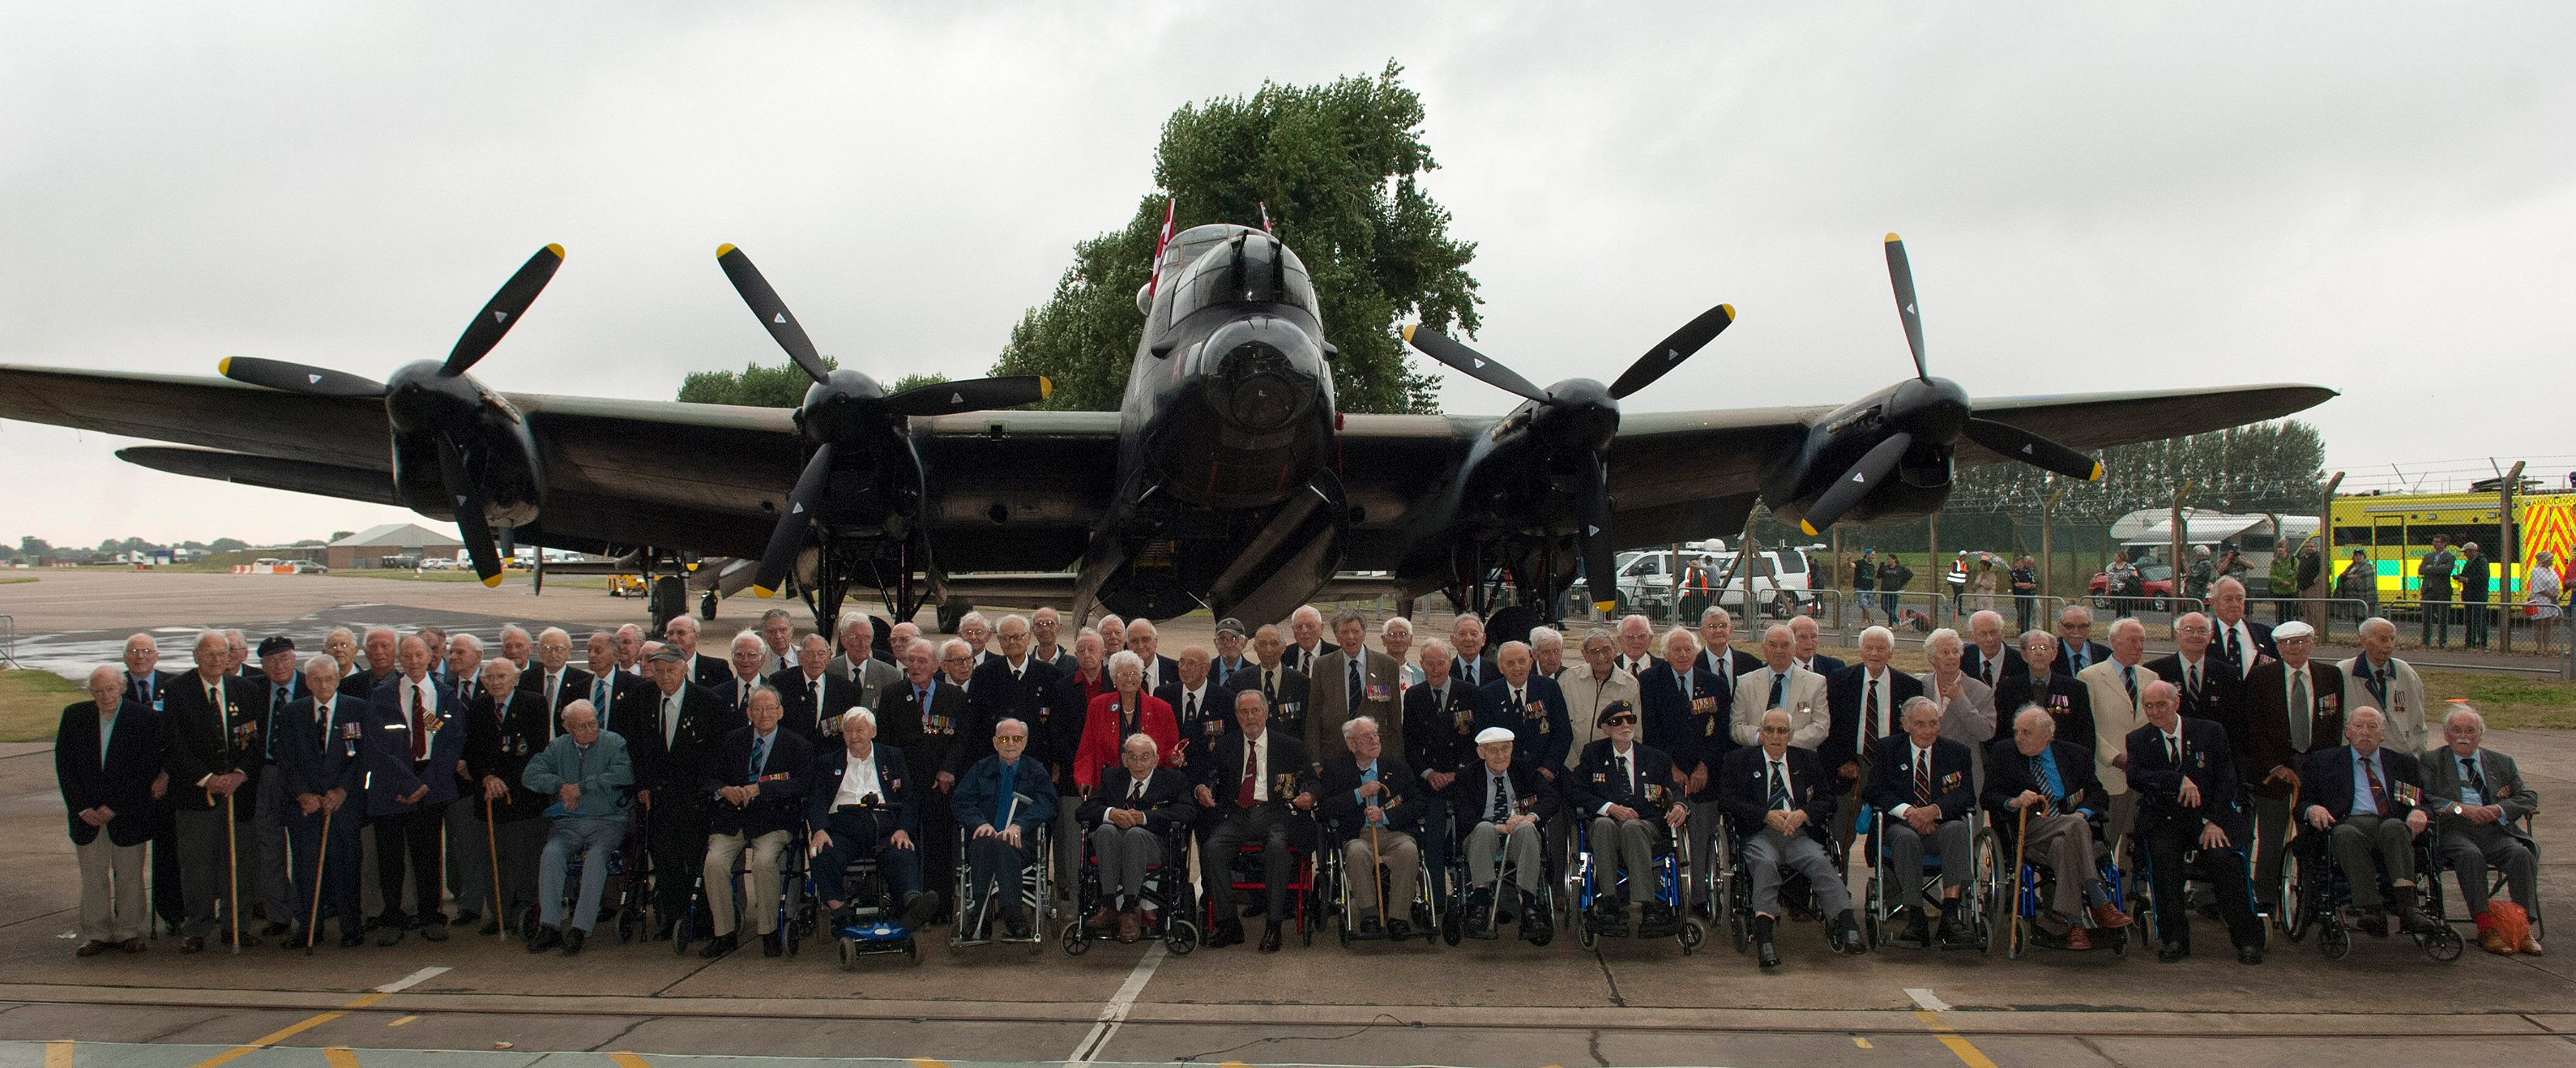 British veterans of Bomber Command gathered to receive their Bomber Command clasps at a ceremony at RAF Coningsby on August 14, 2014. The aircrew re-united to welcome in the Canadian Lancaster and then received their clasps from the station commander of RAF Coningsby, Group Captain Johnny Stringer. PHOTO: MoD Crown Copyright 2014